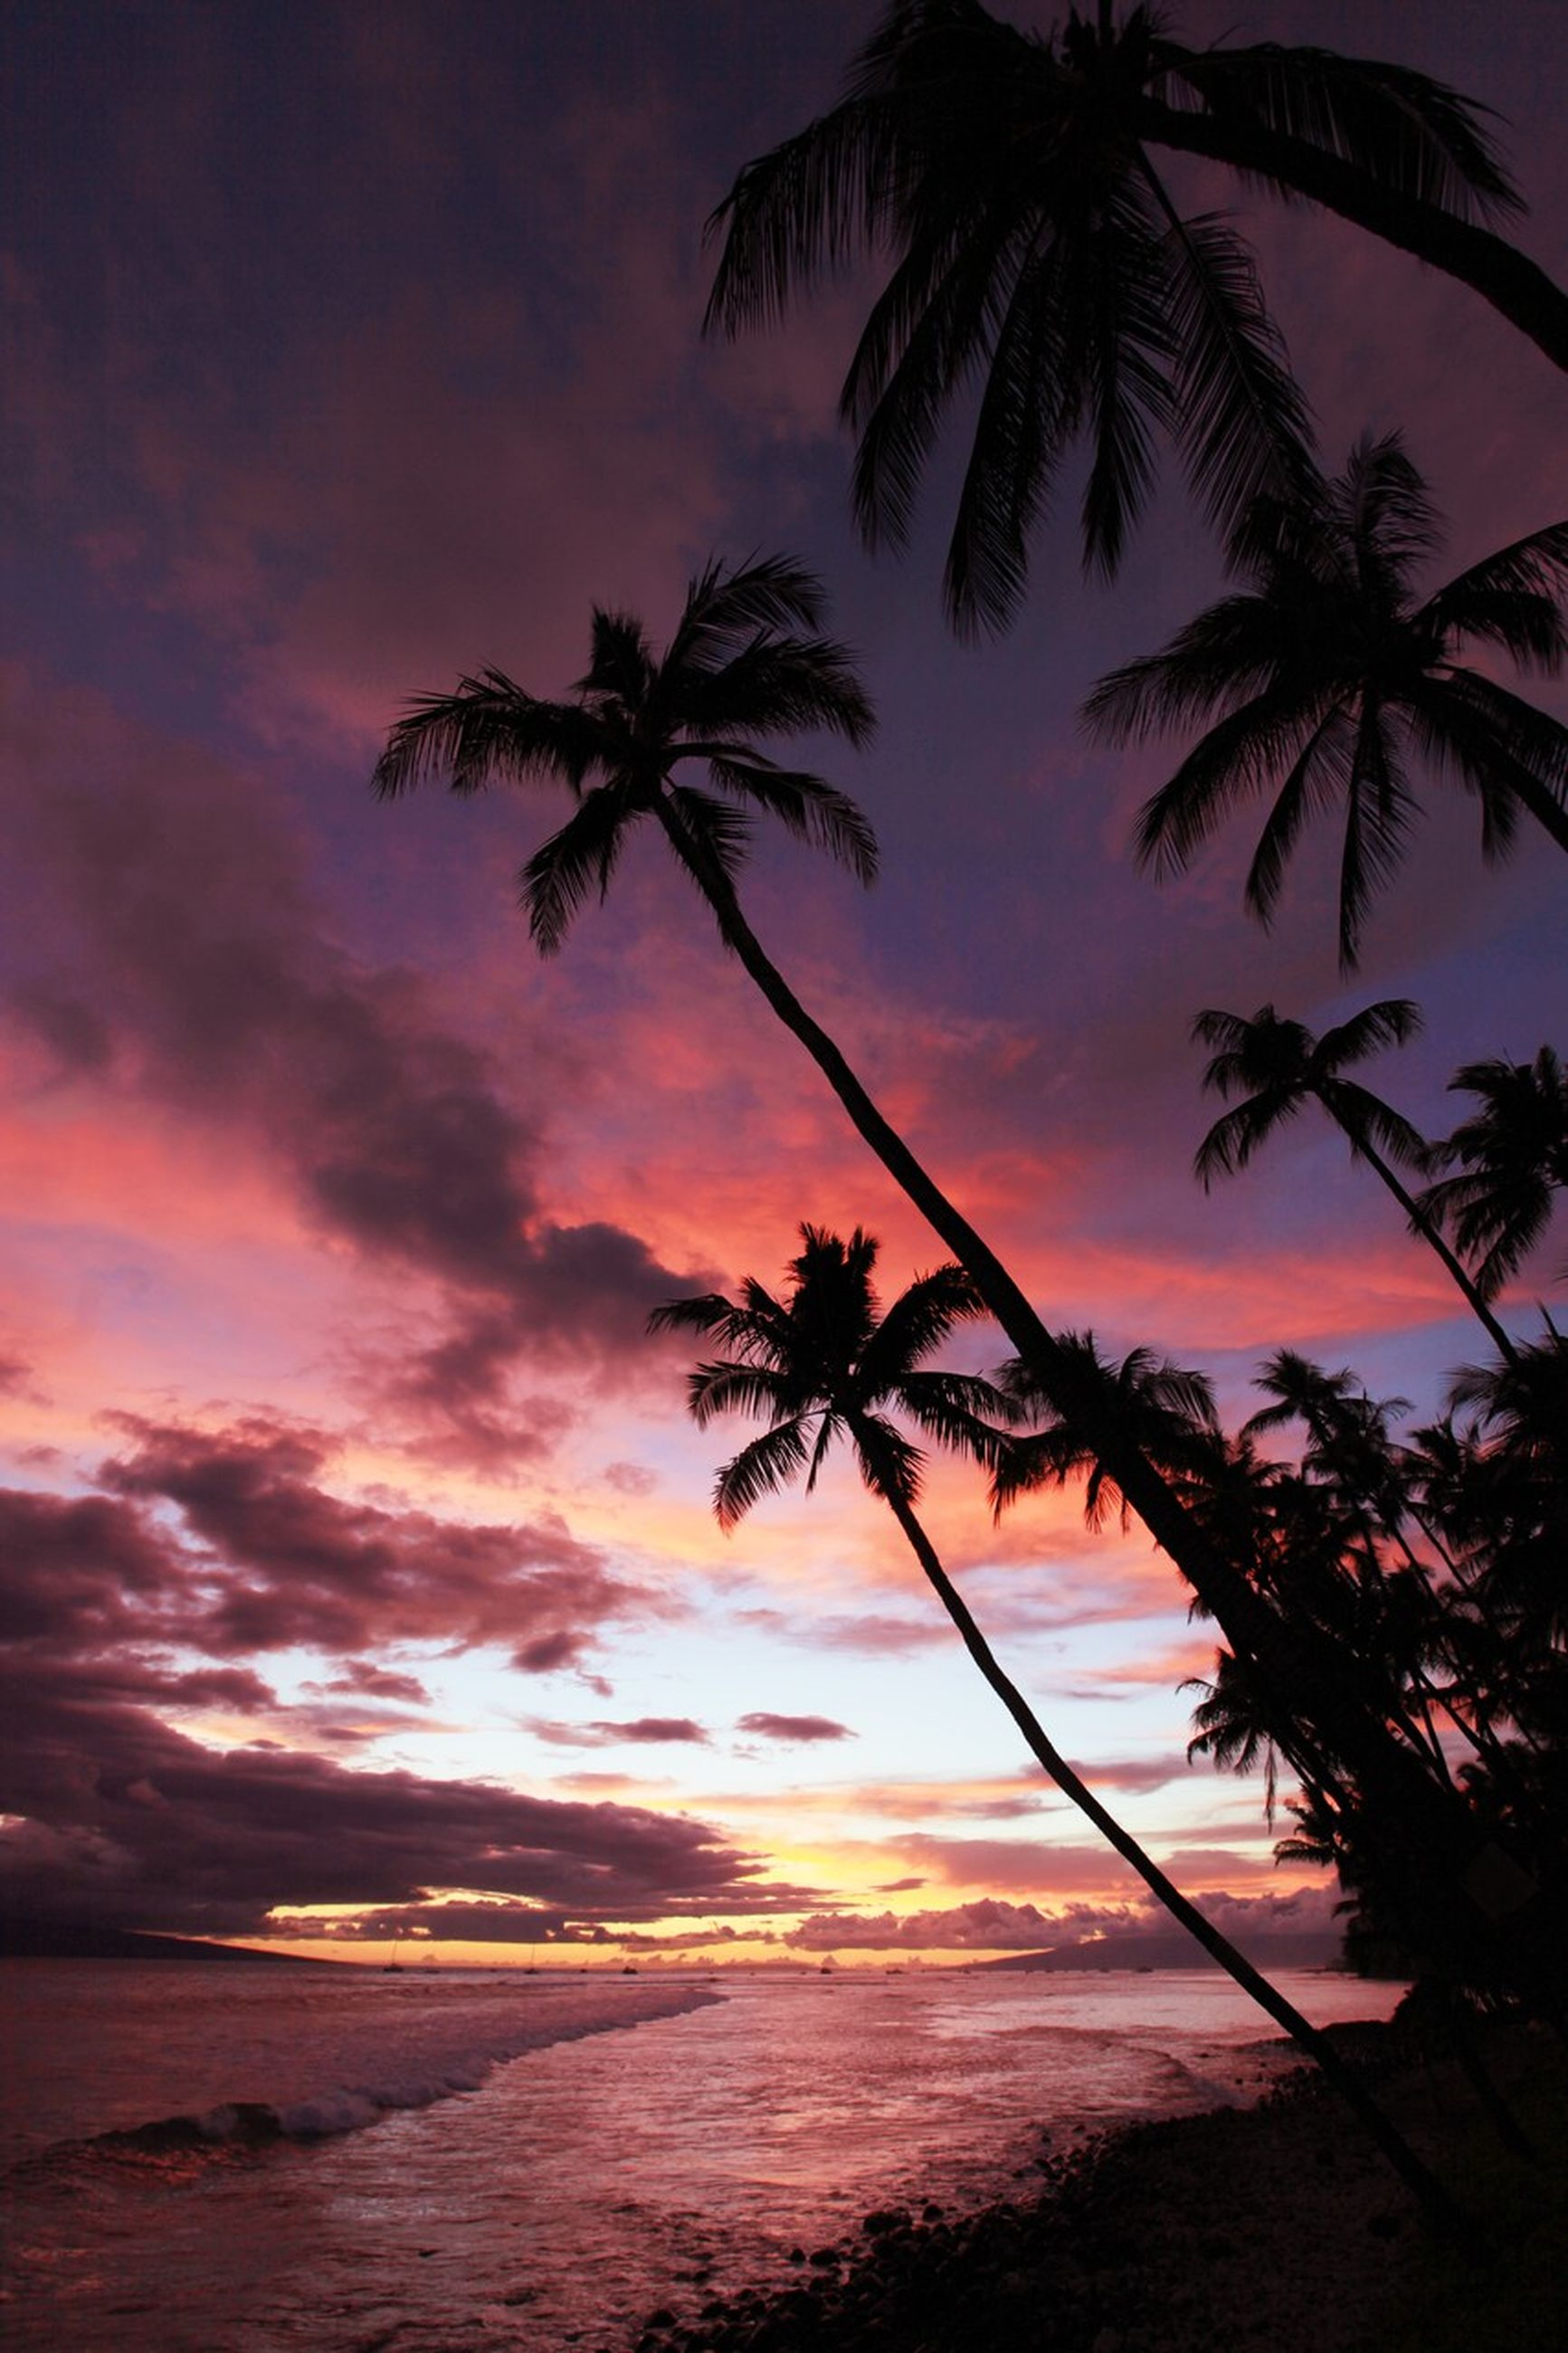 palm tree, sunset, tree, sky, tranquility, scenics, beauty in nature, tranquil scene, silhouette, sea, nature, cloud - sky, beach, idyllic, orange color, growth, horizon over water, water, dramatic sky, cloud